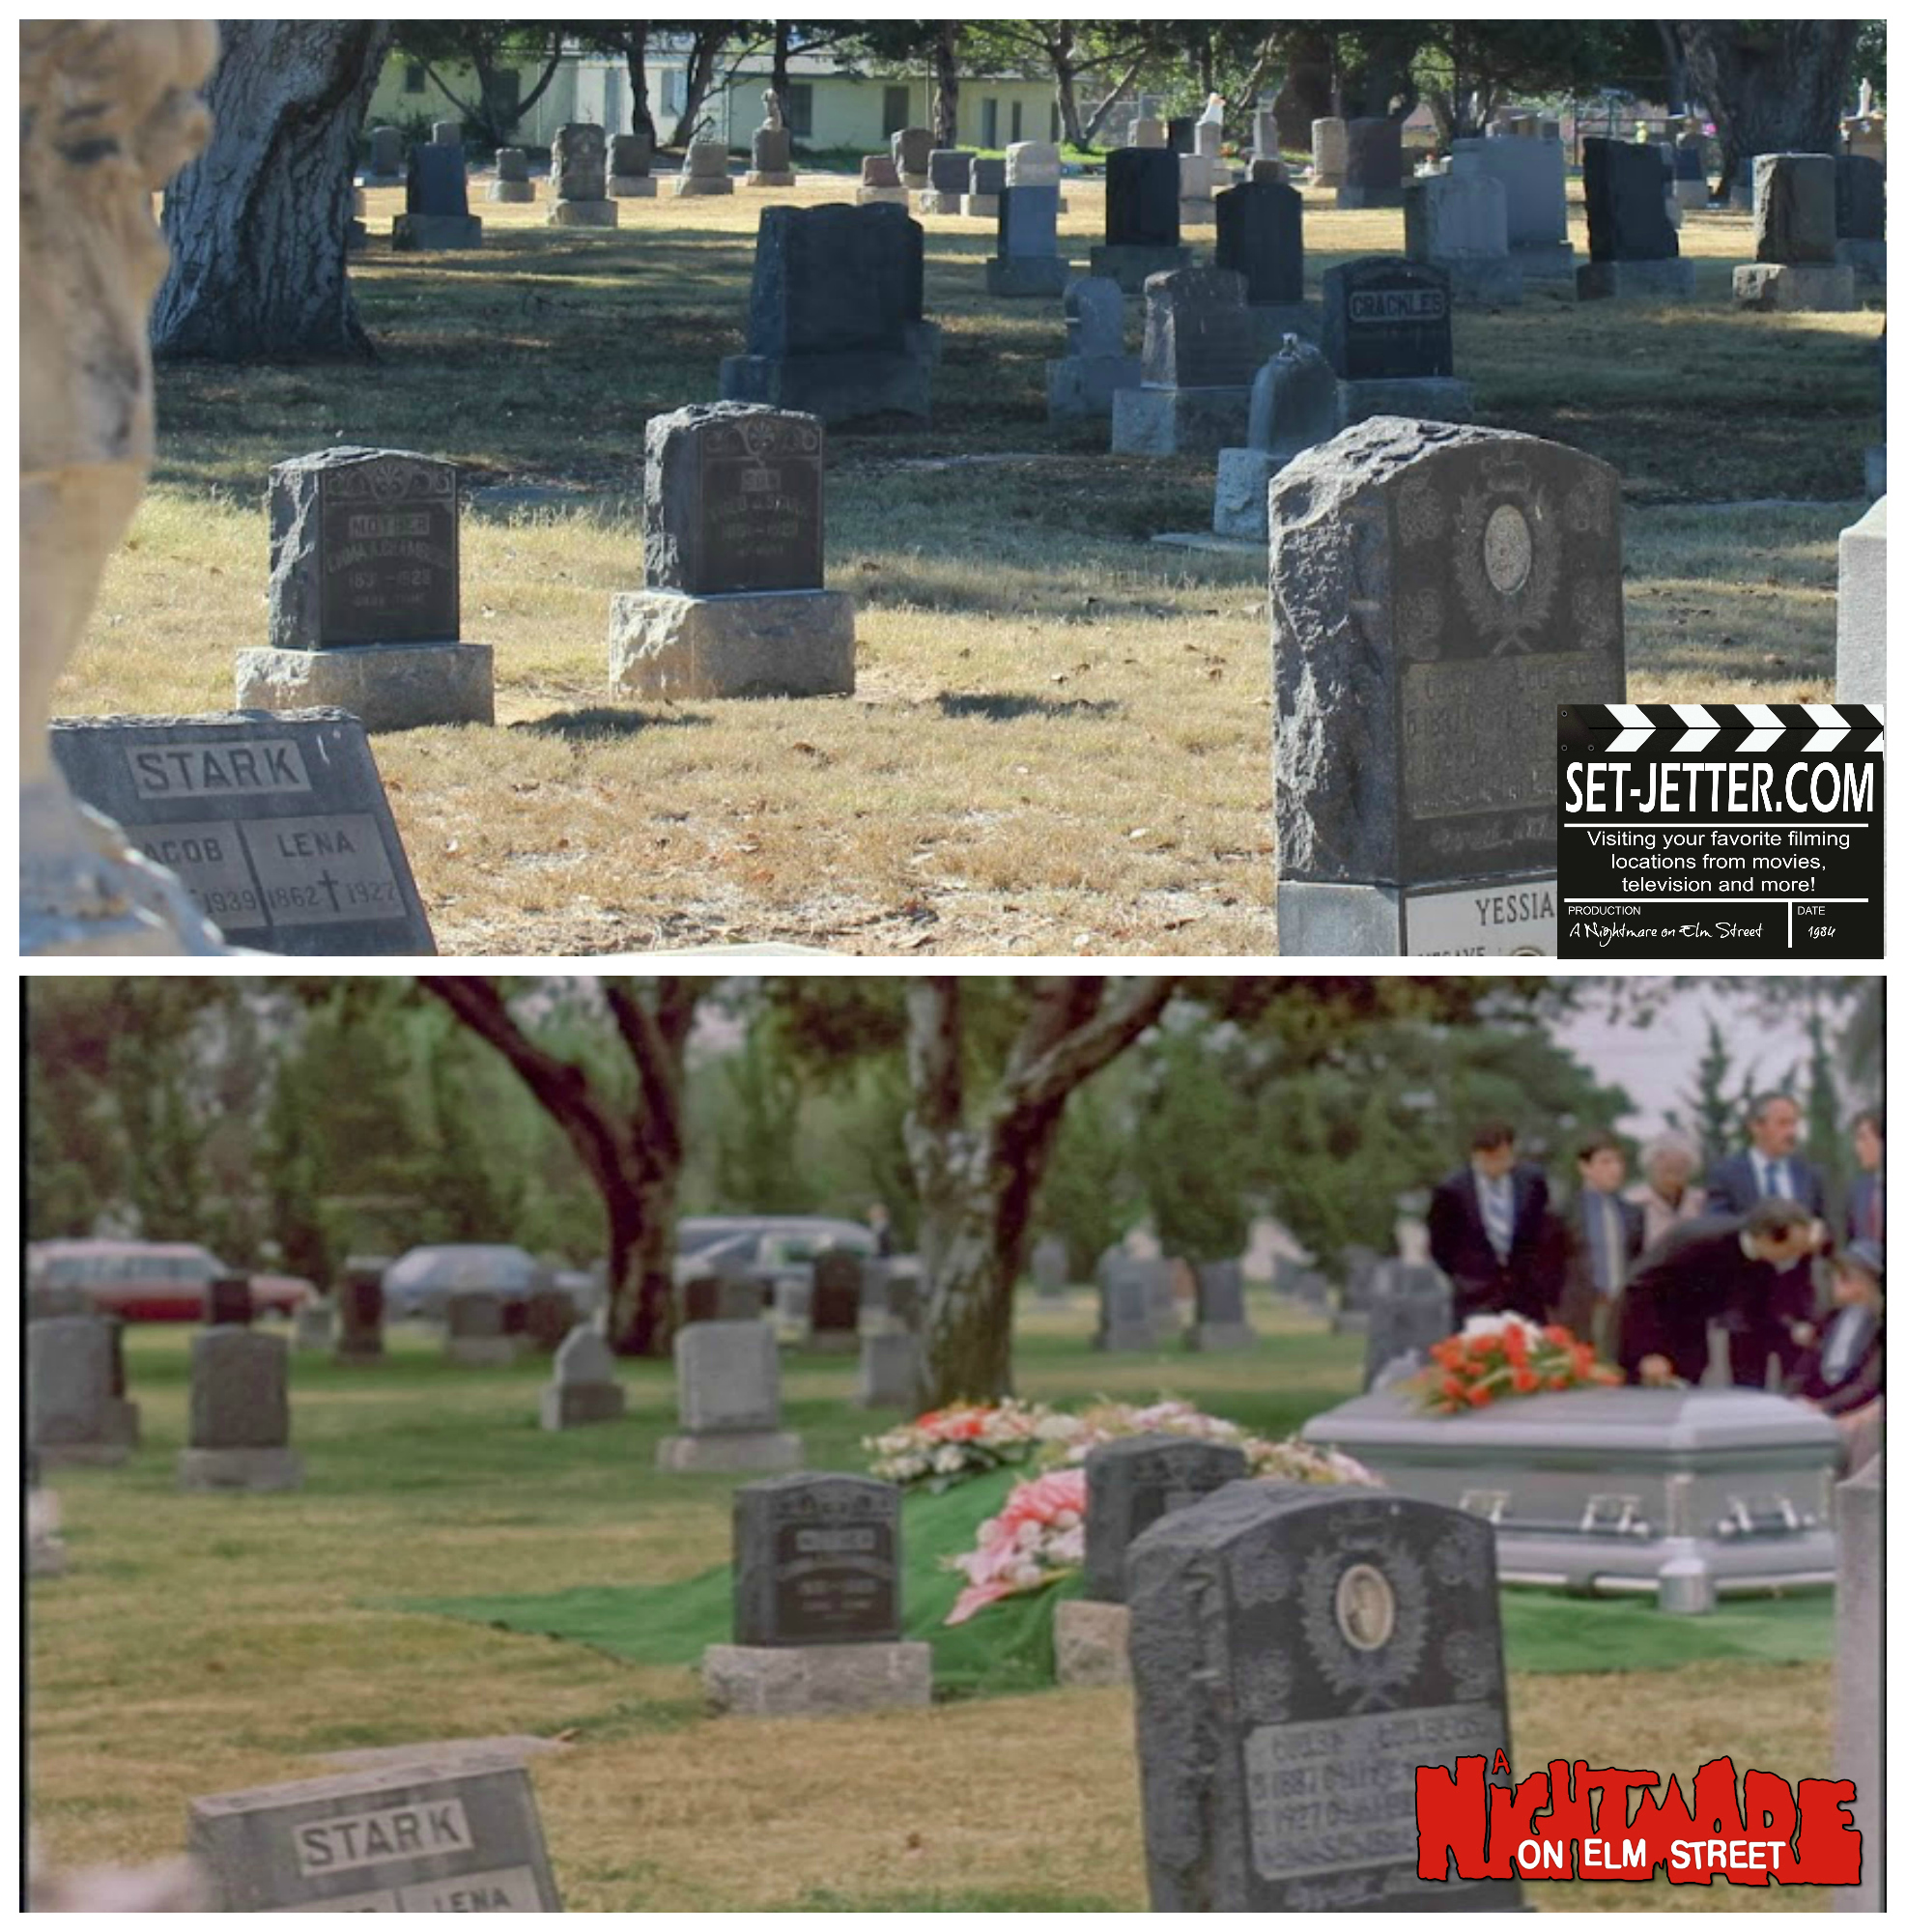 Nightmare on Elm Street comparison 21.jpg